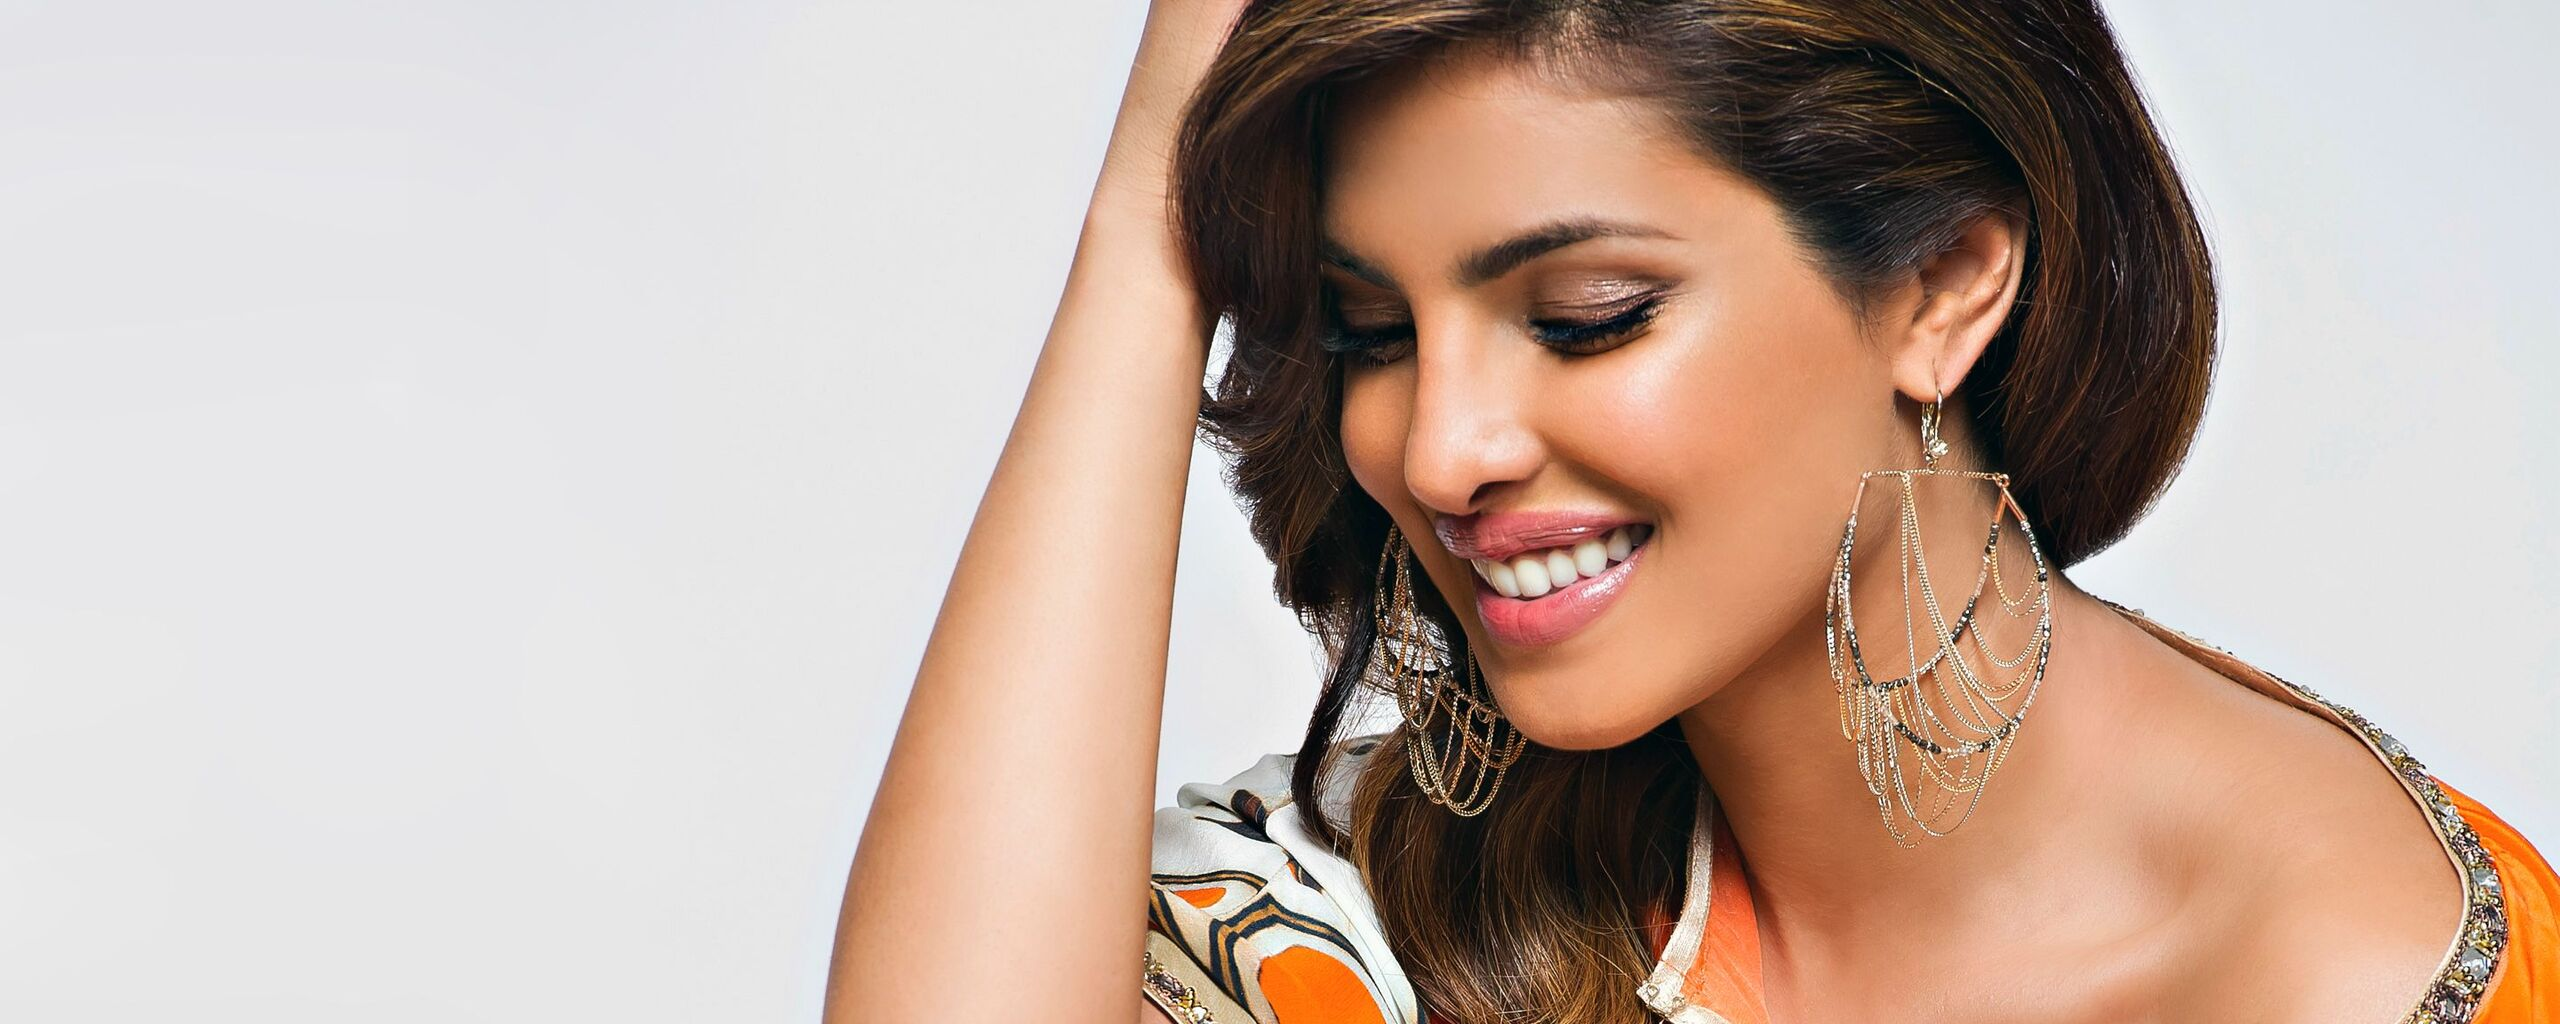 priyanka-chopra-smiling-wide.jpg